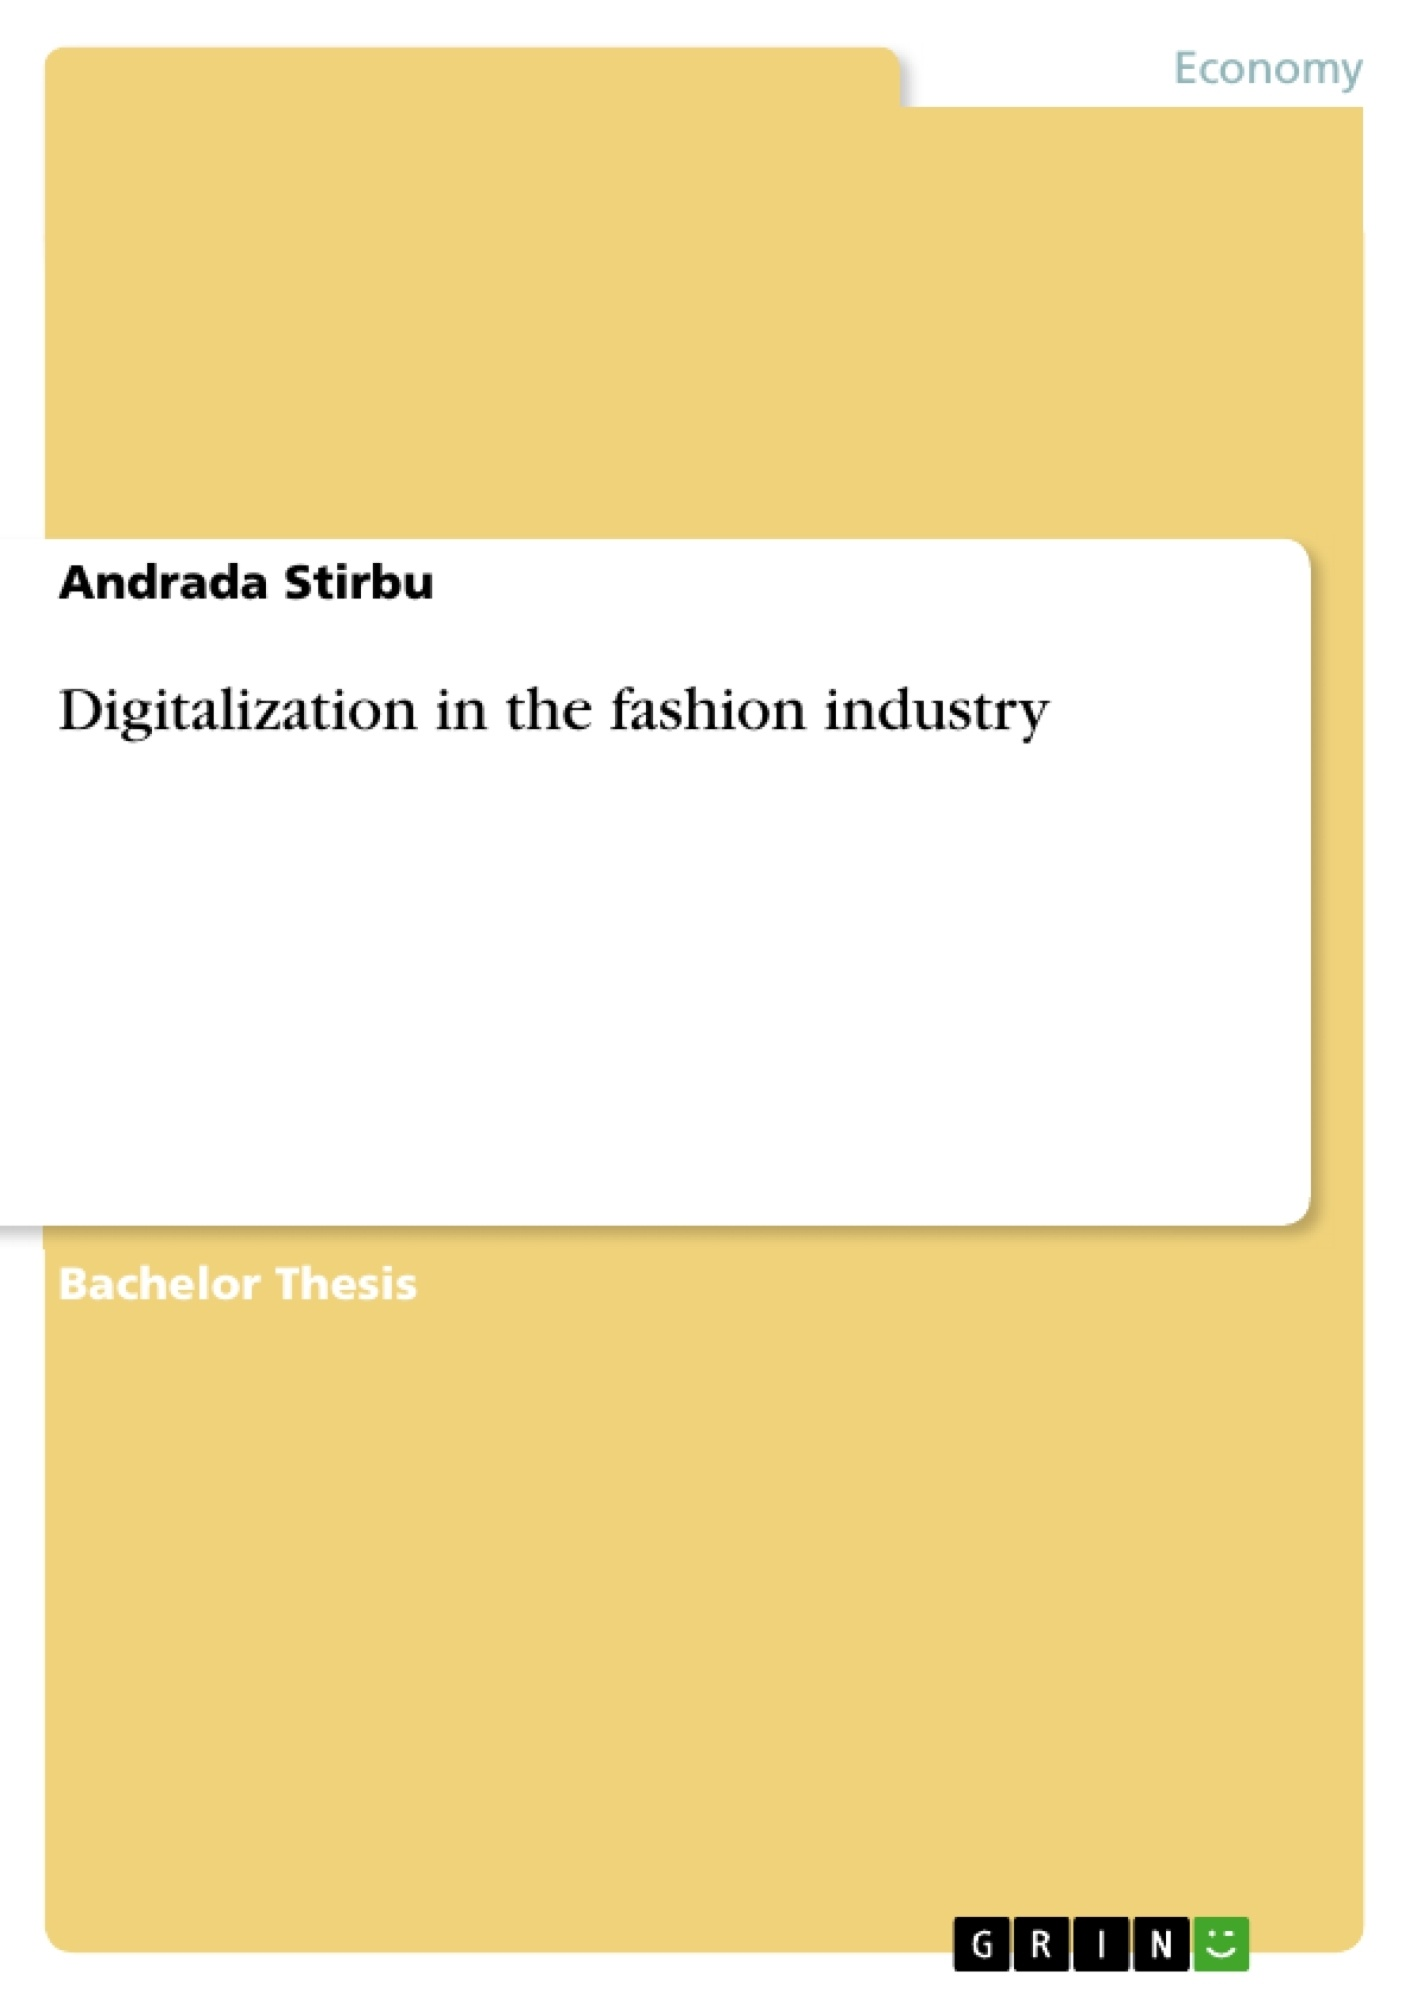 Title: Digitalization in the fashion industry